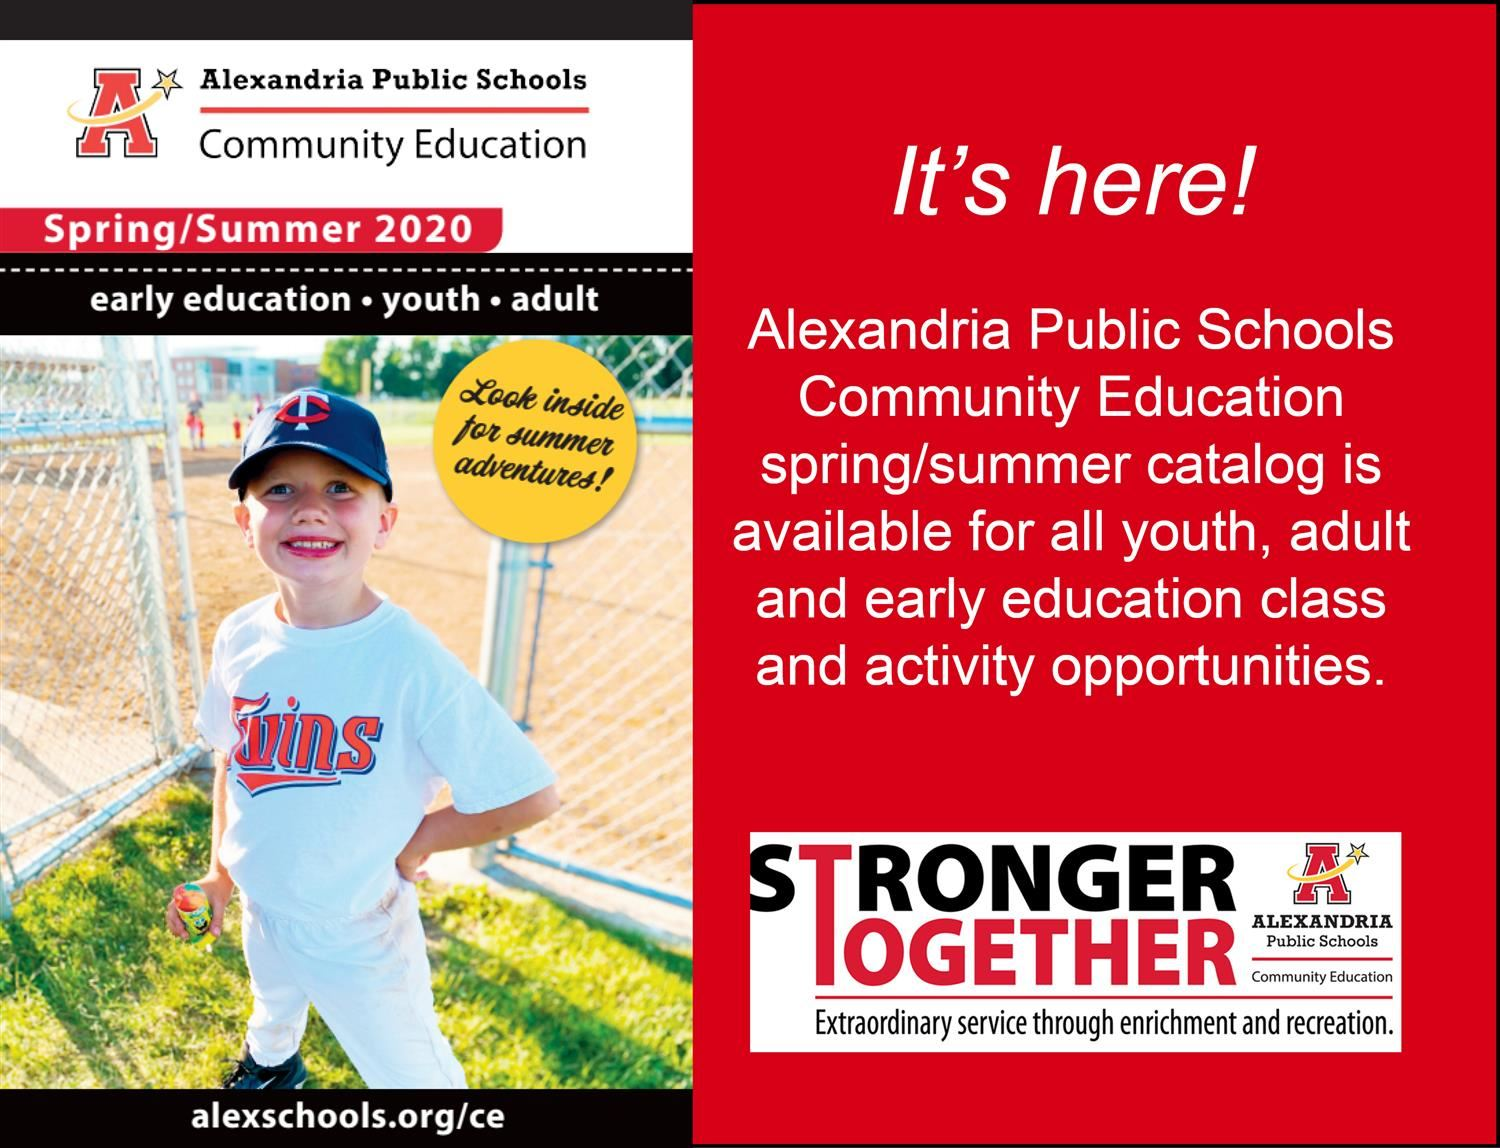 Community Education Spring/Summer Catalog